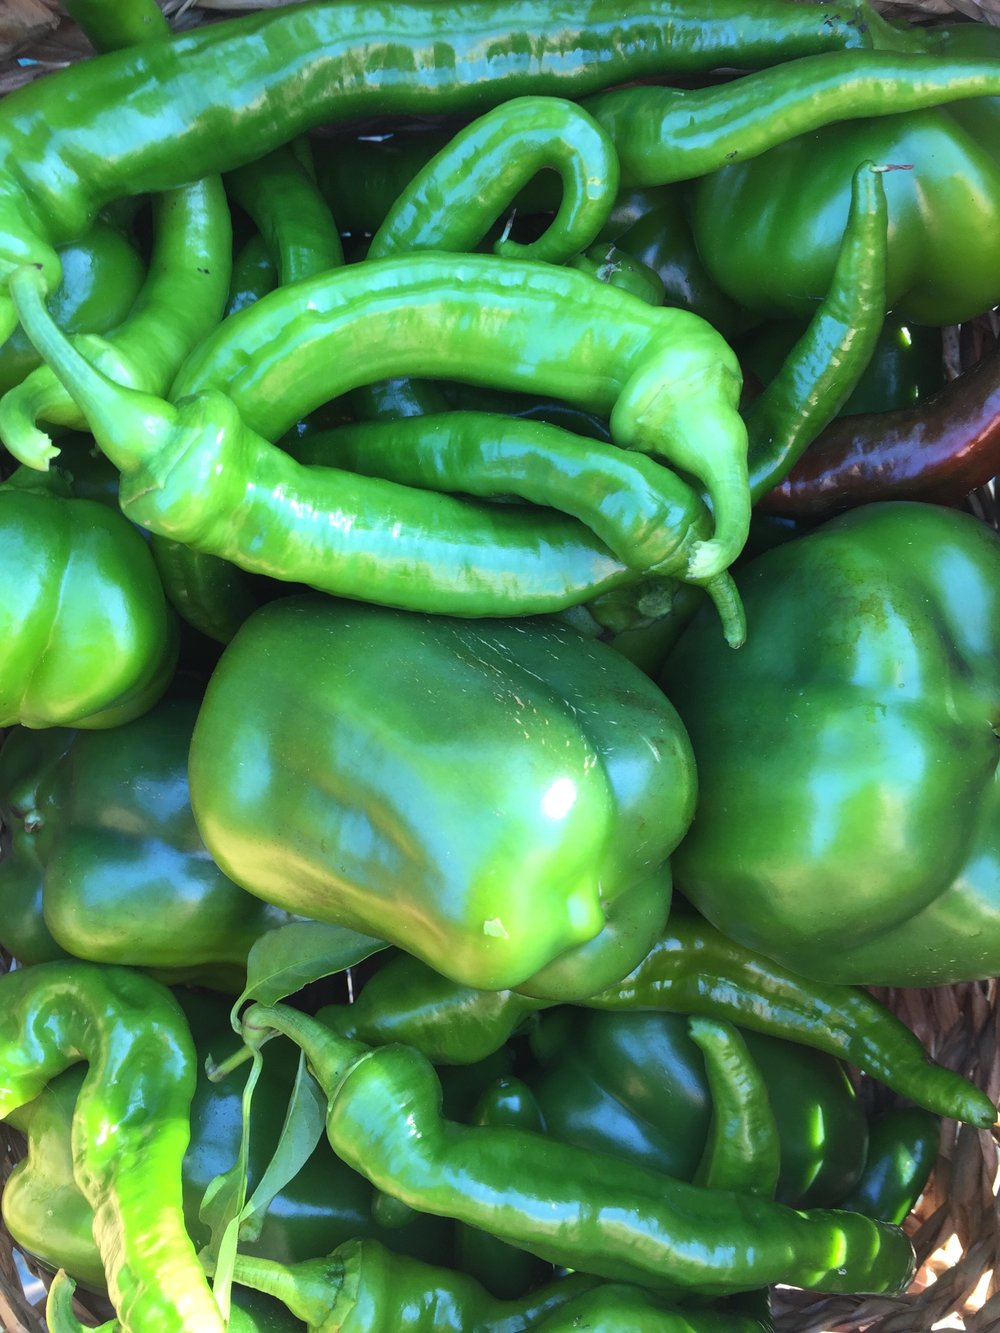 I harvested bell peppers, Jimmy Nardellos, pimentos, Jalapenos, and Maule's Red Hots.